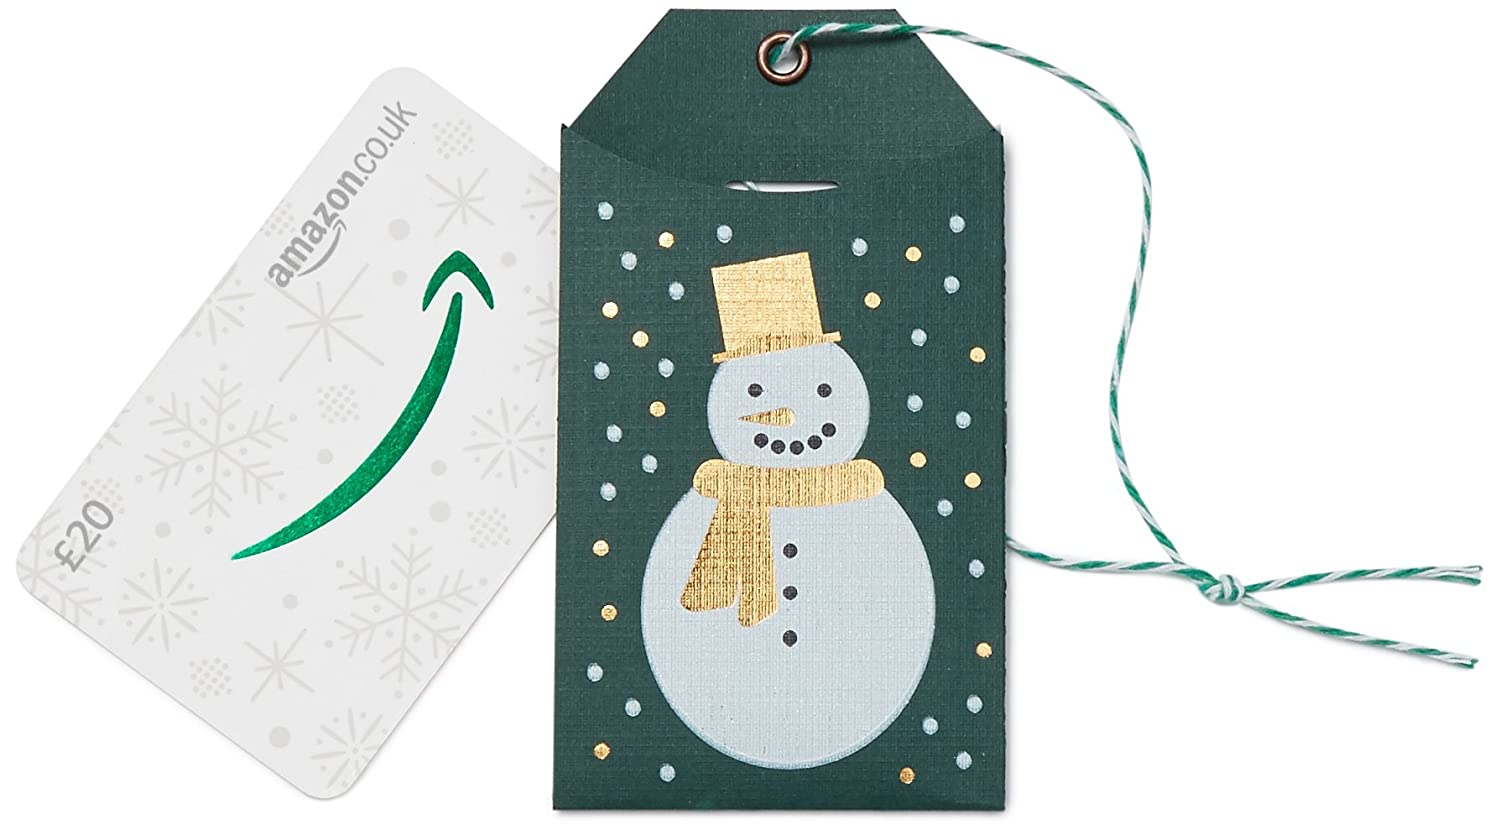 Amazon.co.uk Gift Card - Gift Tag - FREE One-Day Delivery Amazon EU S.à.r.l. Fixed